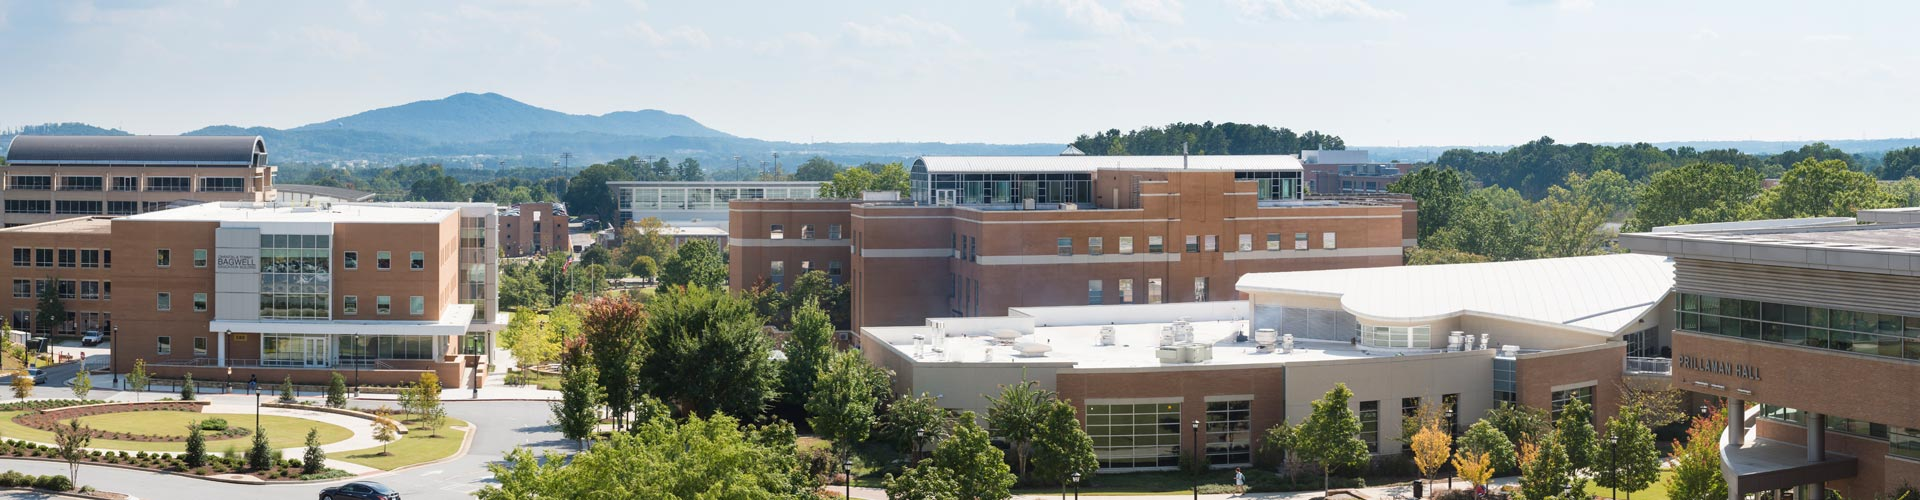 Kennesaw Campus with Kennesaw Mountain in the background